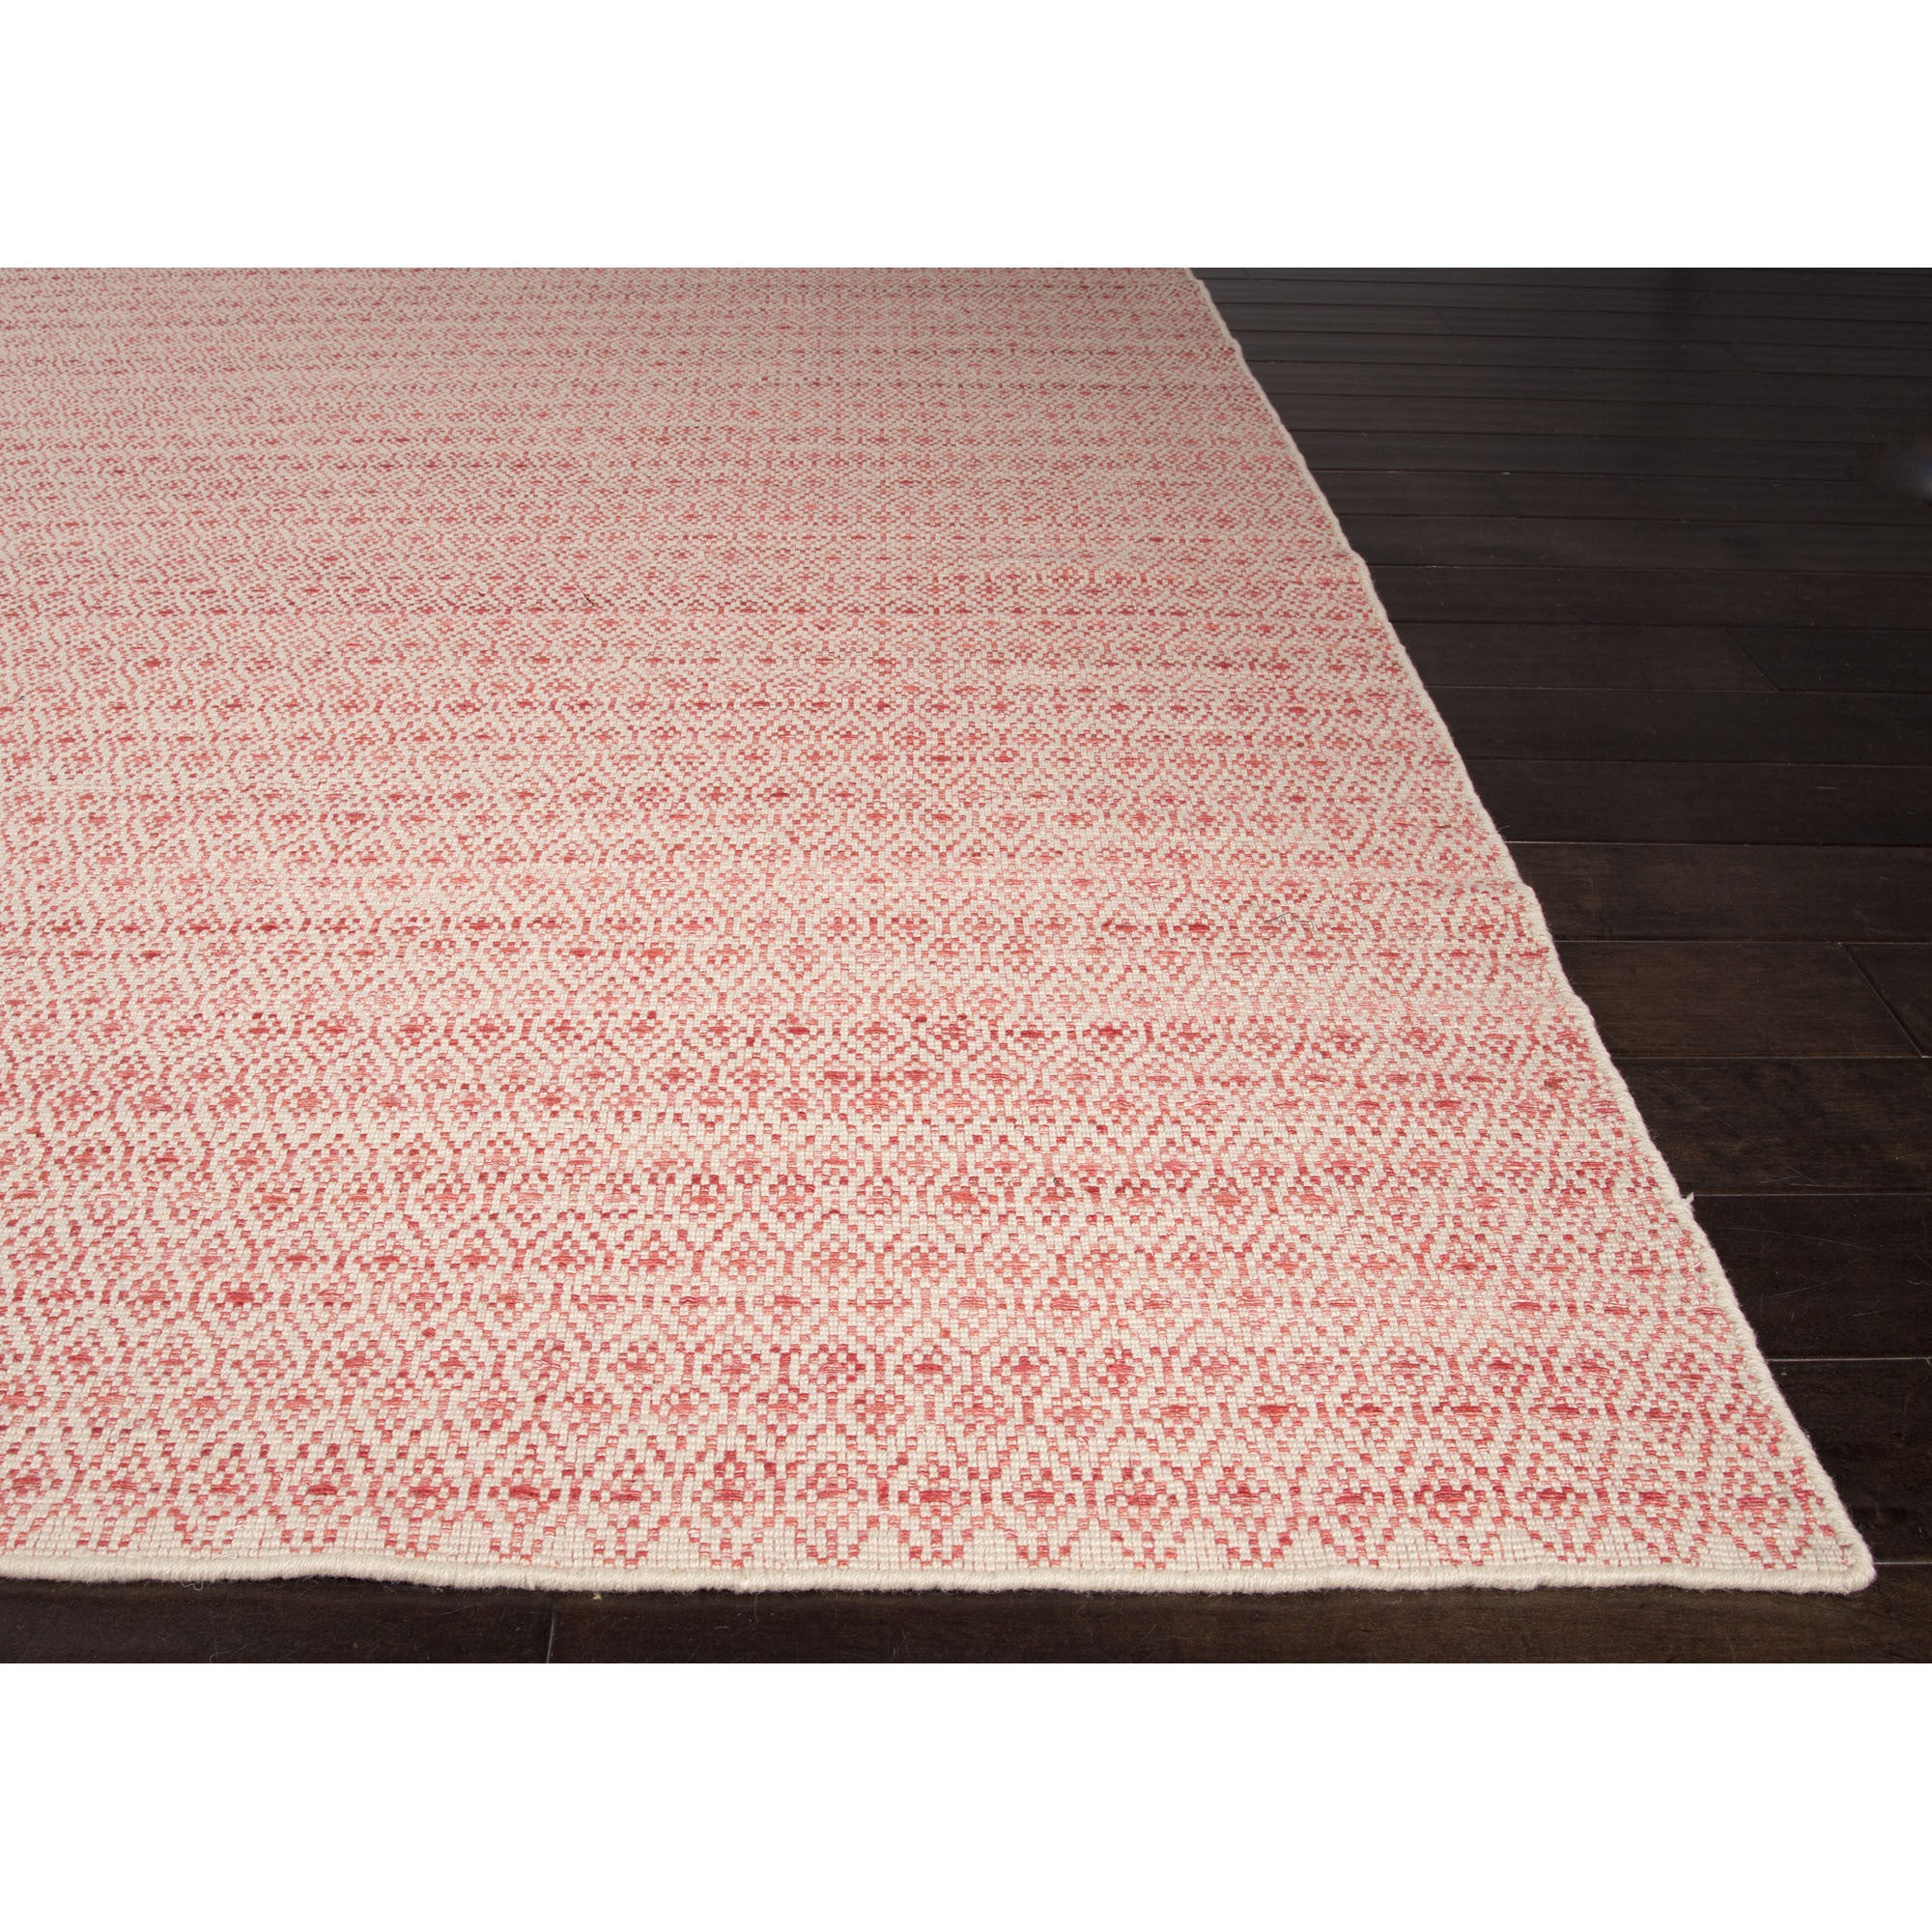 Jaipur Rugs FlatWeave Moroccan Pattern Red/Taupe Wool And